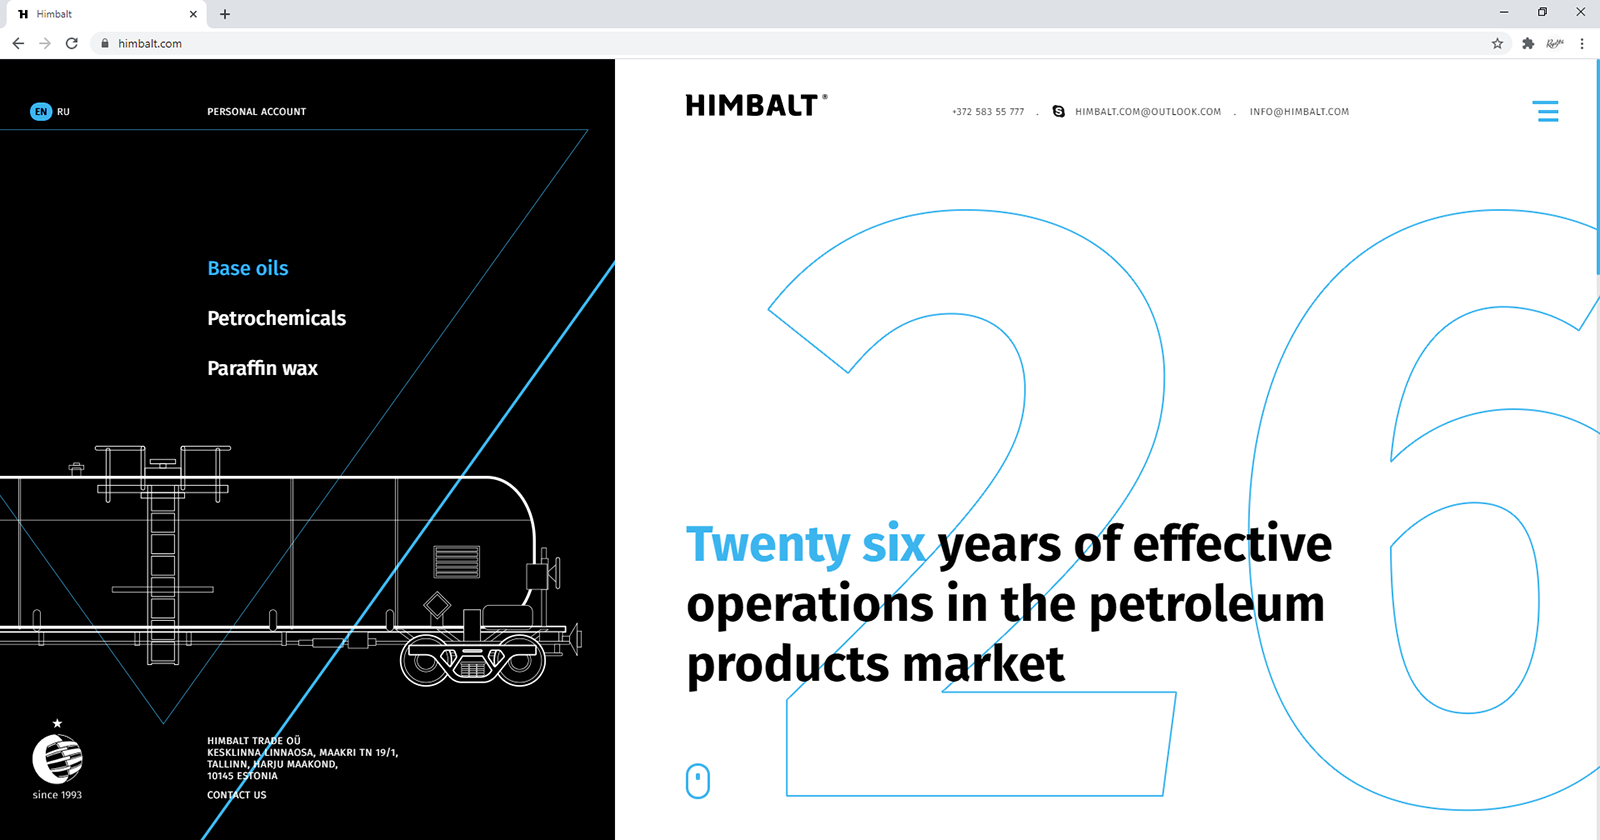 Vector illustrations in the website design. Himbalt website home page.